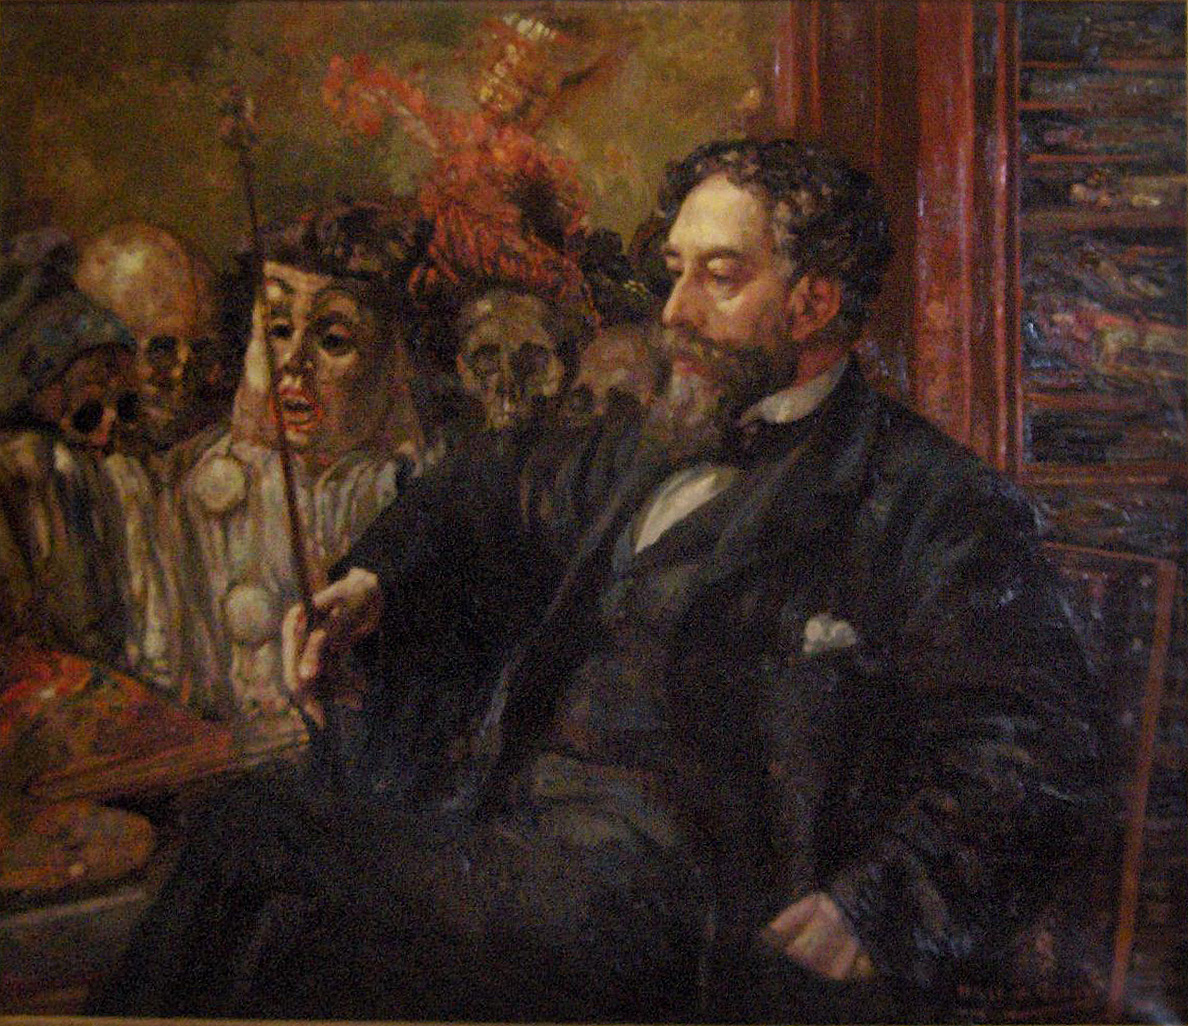 http://upload.wikimedia.org/wikipedia/commons/5/56/Henry_De_Groux.James_Ensor.JPG